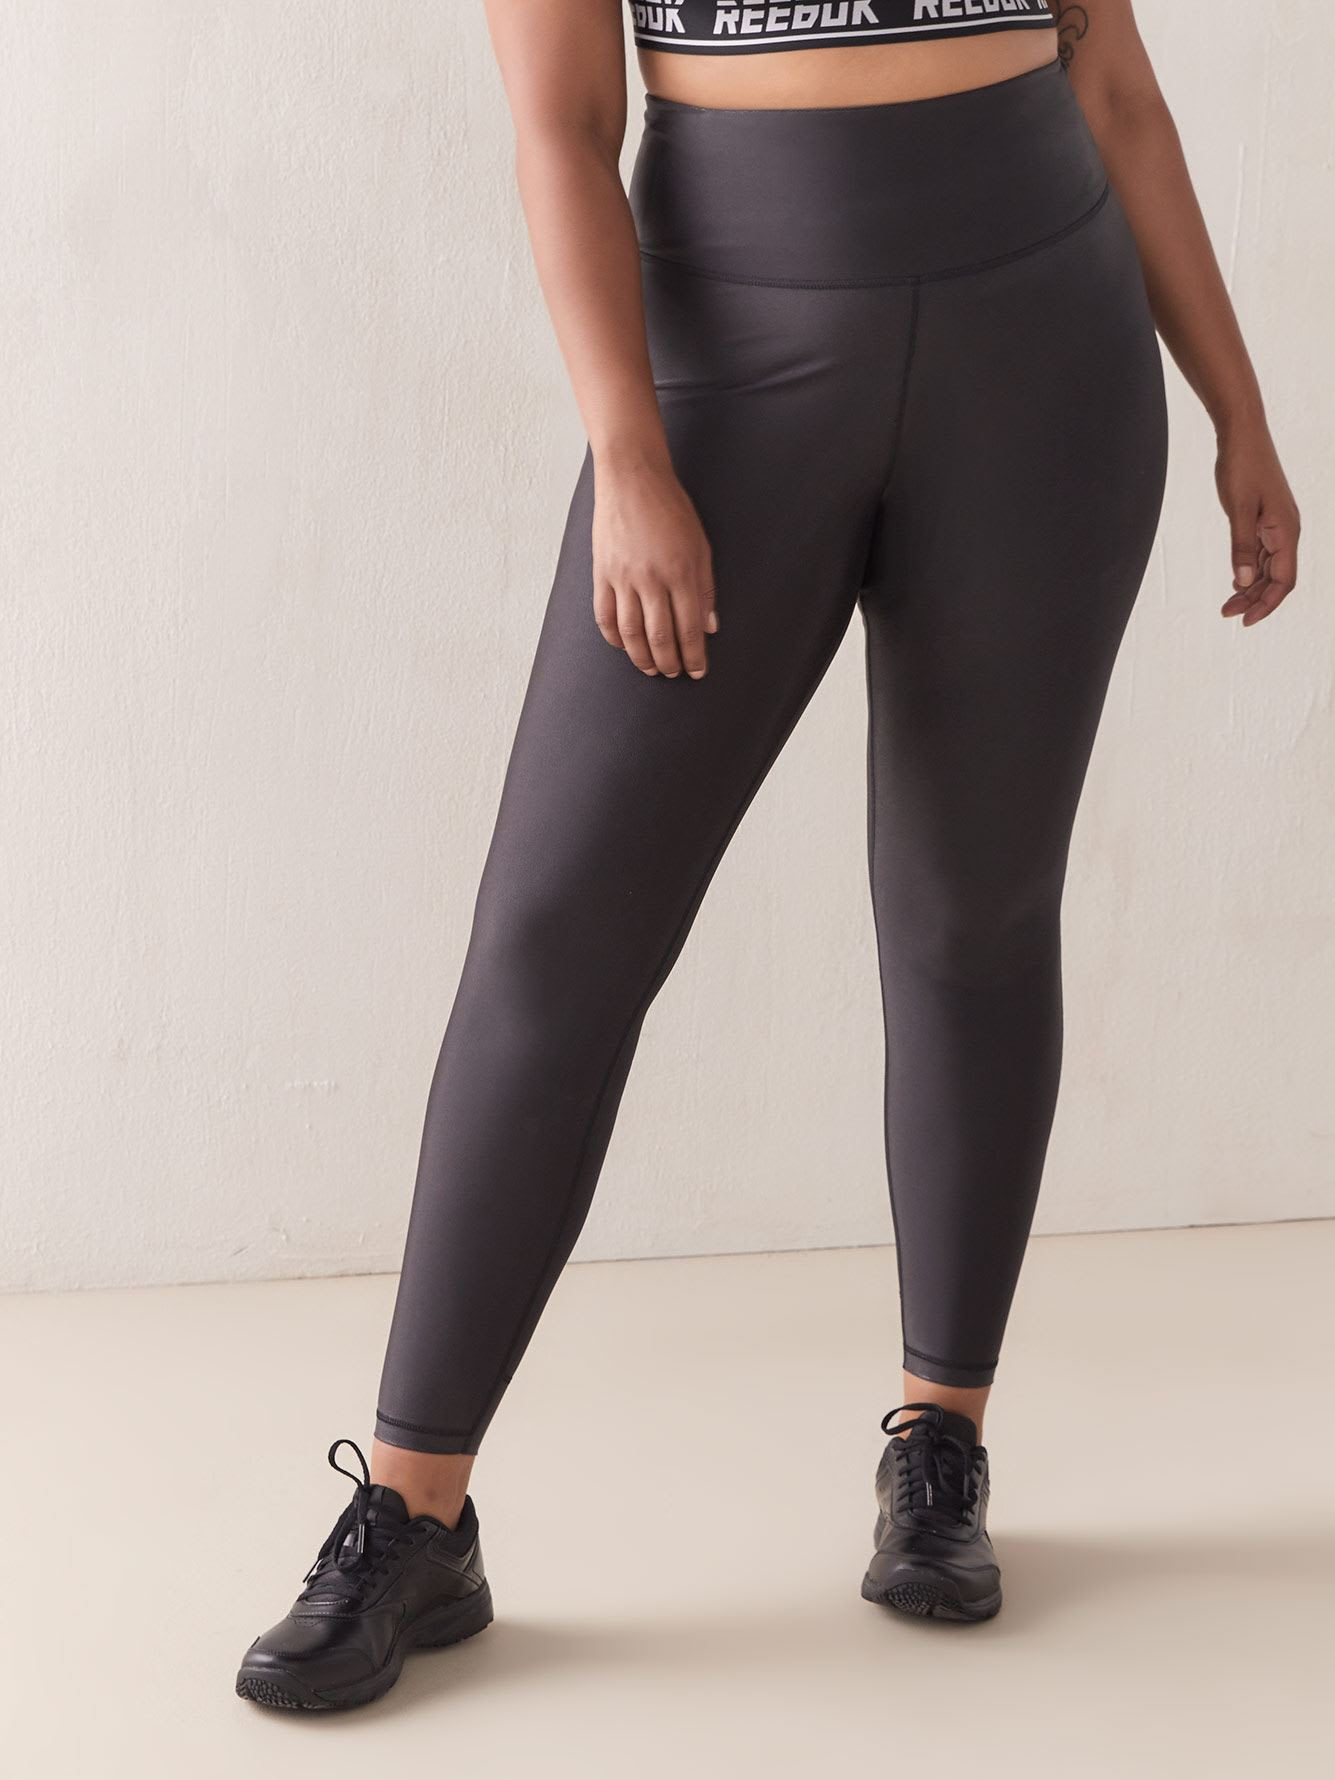 Lux Metallic Black Legging - Reebok